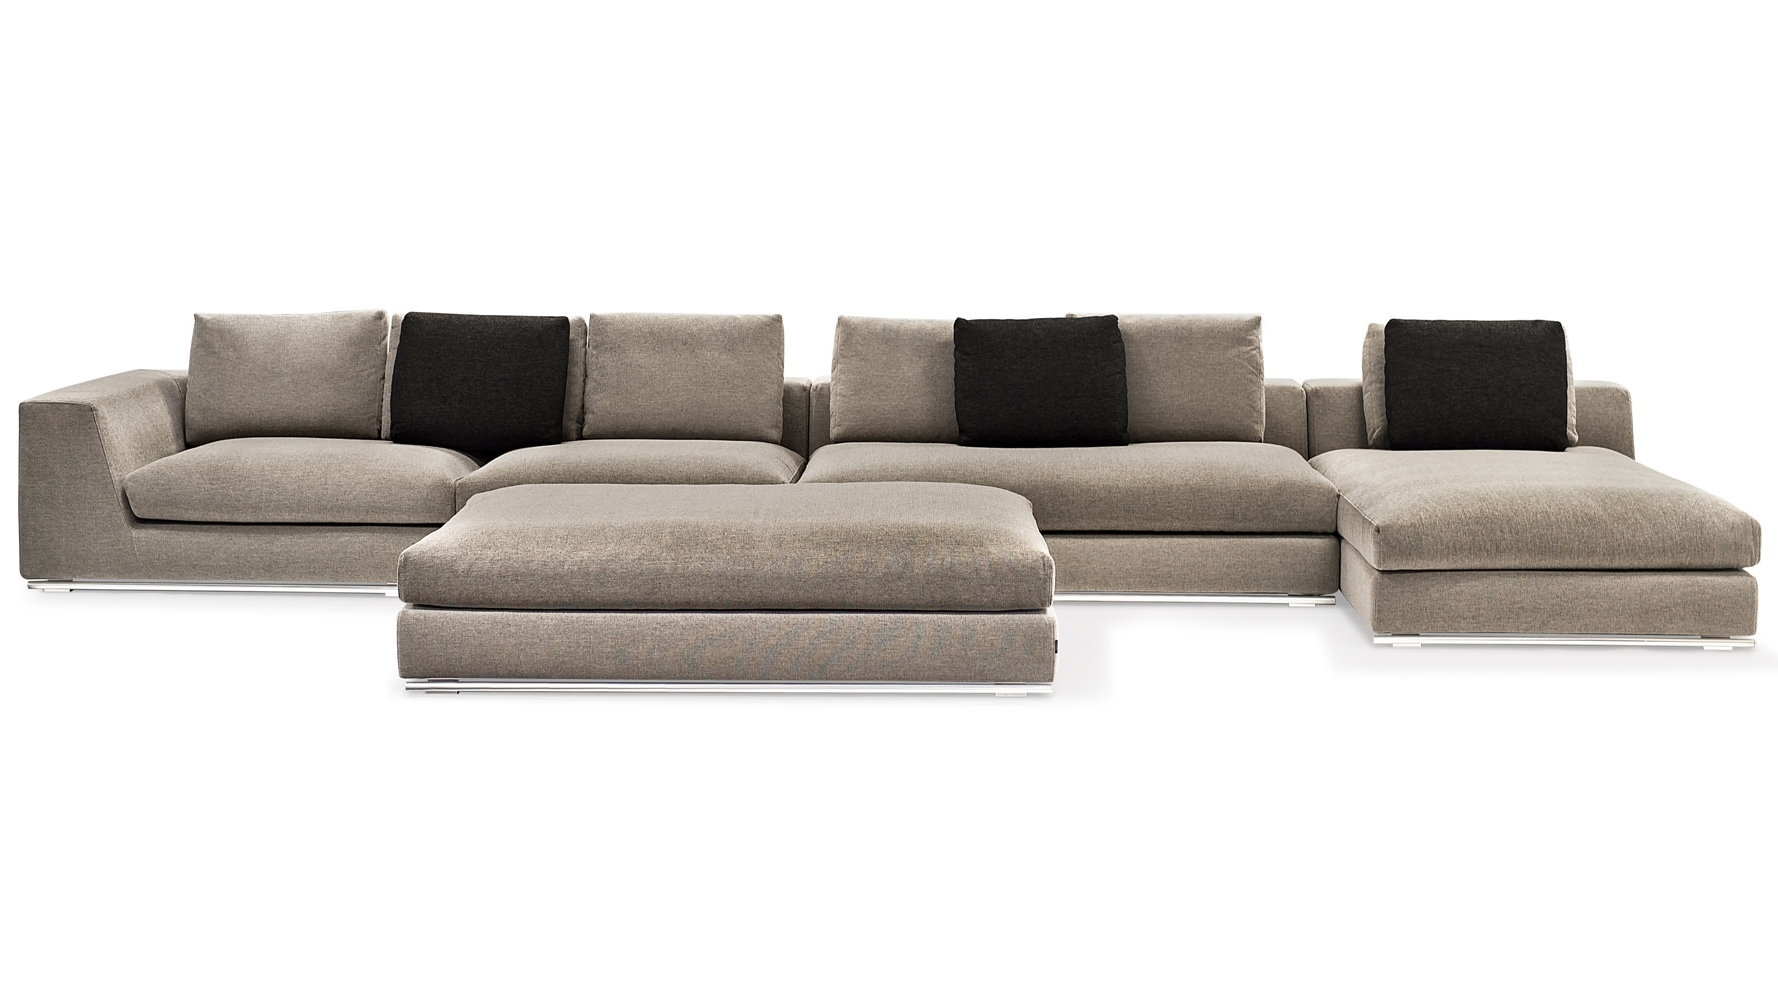 Zuri Furniture Intended For Most Recently Released Armless Sectional Sofas (View 11 of 15)